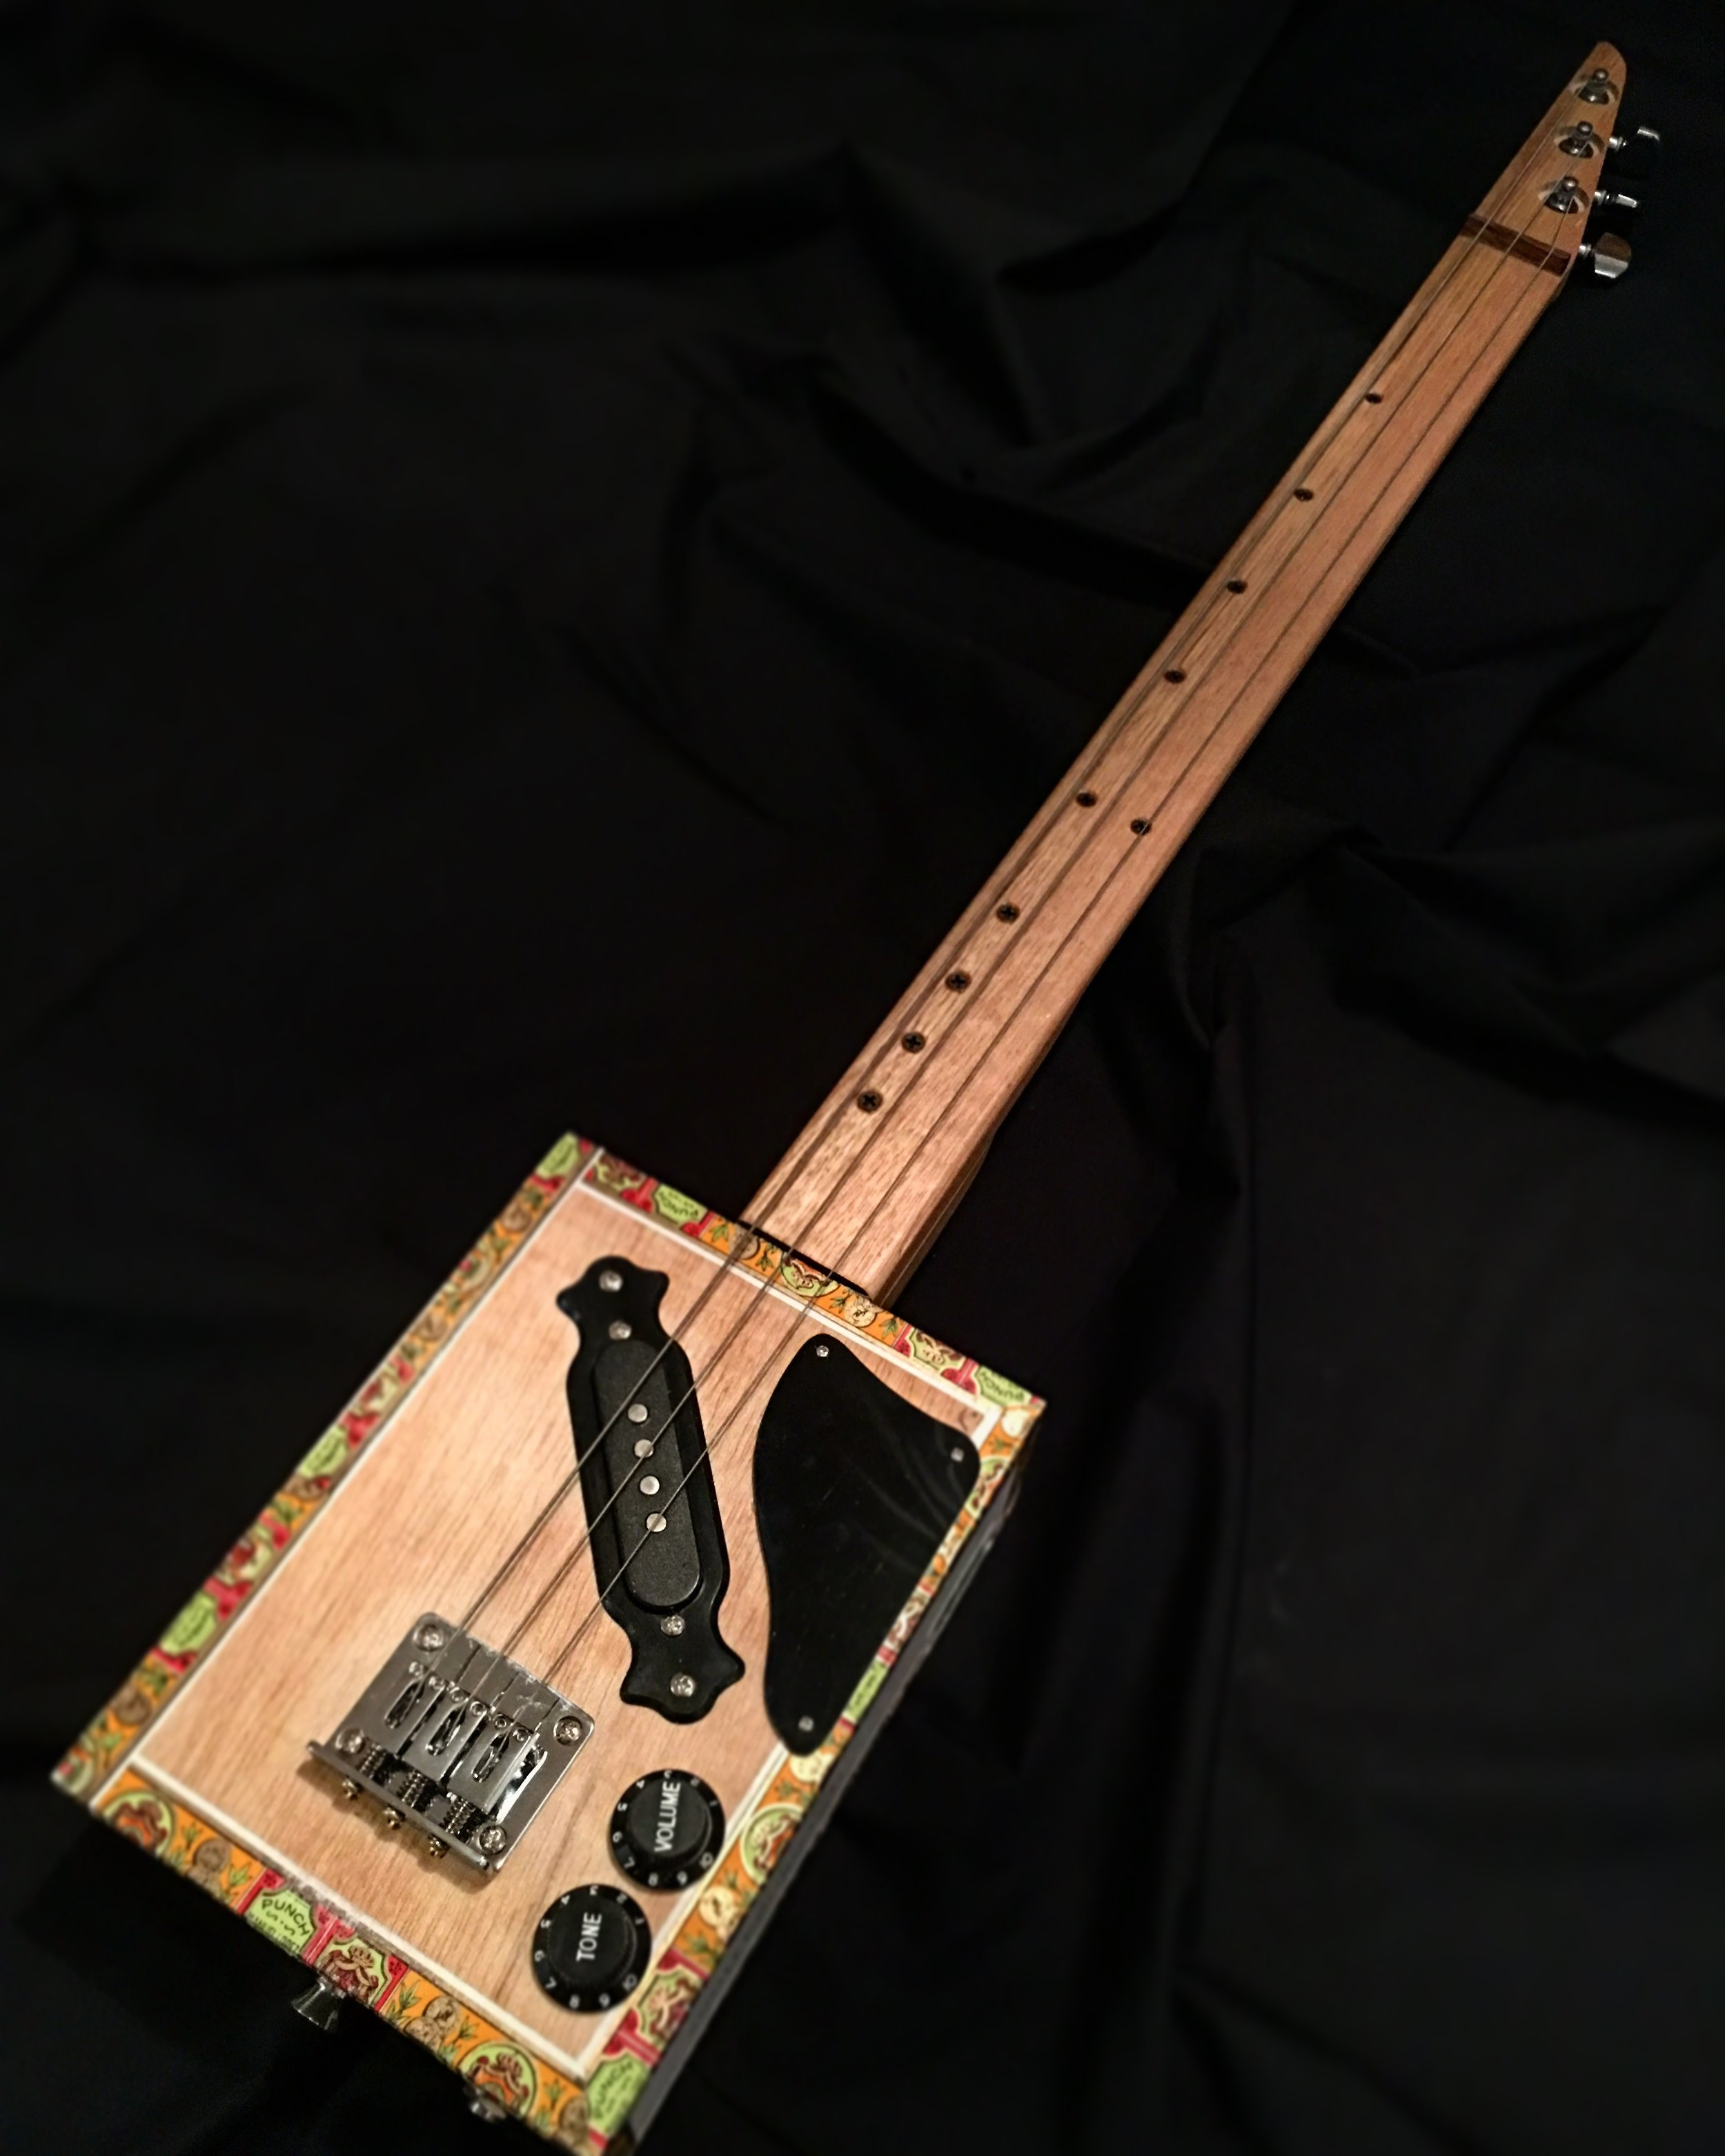 ROLLING THUNDER premium fretless CBG - The ROLLING THUNDER CBG is a quality fretless CBG with electric guitar pickup. They are designed for the musician who wants a quality instrument for stage use.These are a fretless instrument and will require a finger slide.They are made using a variety of great cigar boxes and are all unique.* genuine cigar boxes* mountain ash necks* Meranti or oak fingerboards for extra strength* electric guitar pickups* fixed steel bridge* quality tuners* industry standard electrics* decorative corner protectorsFrom $329